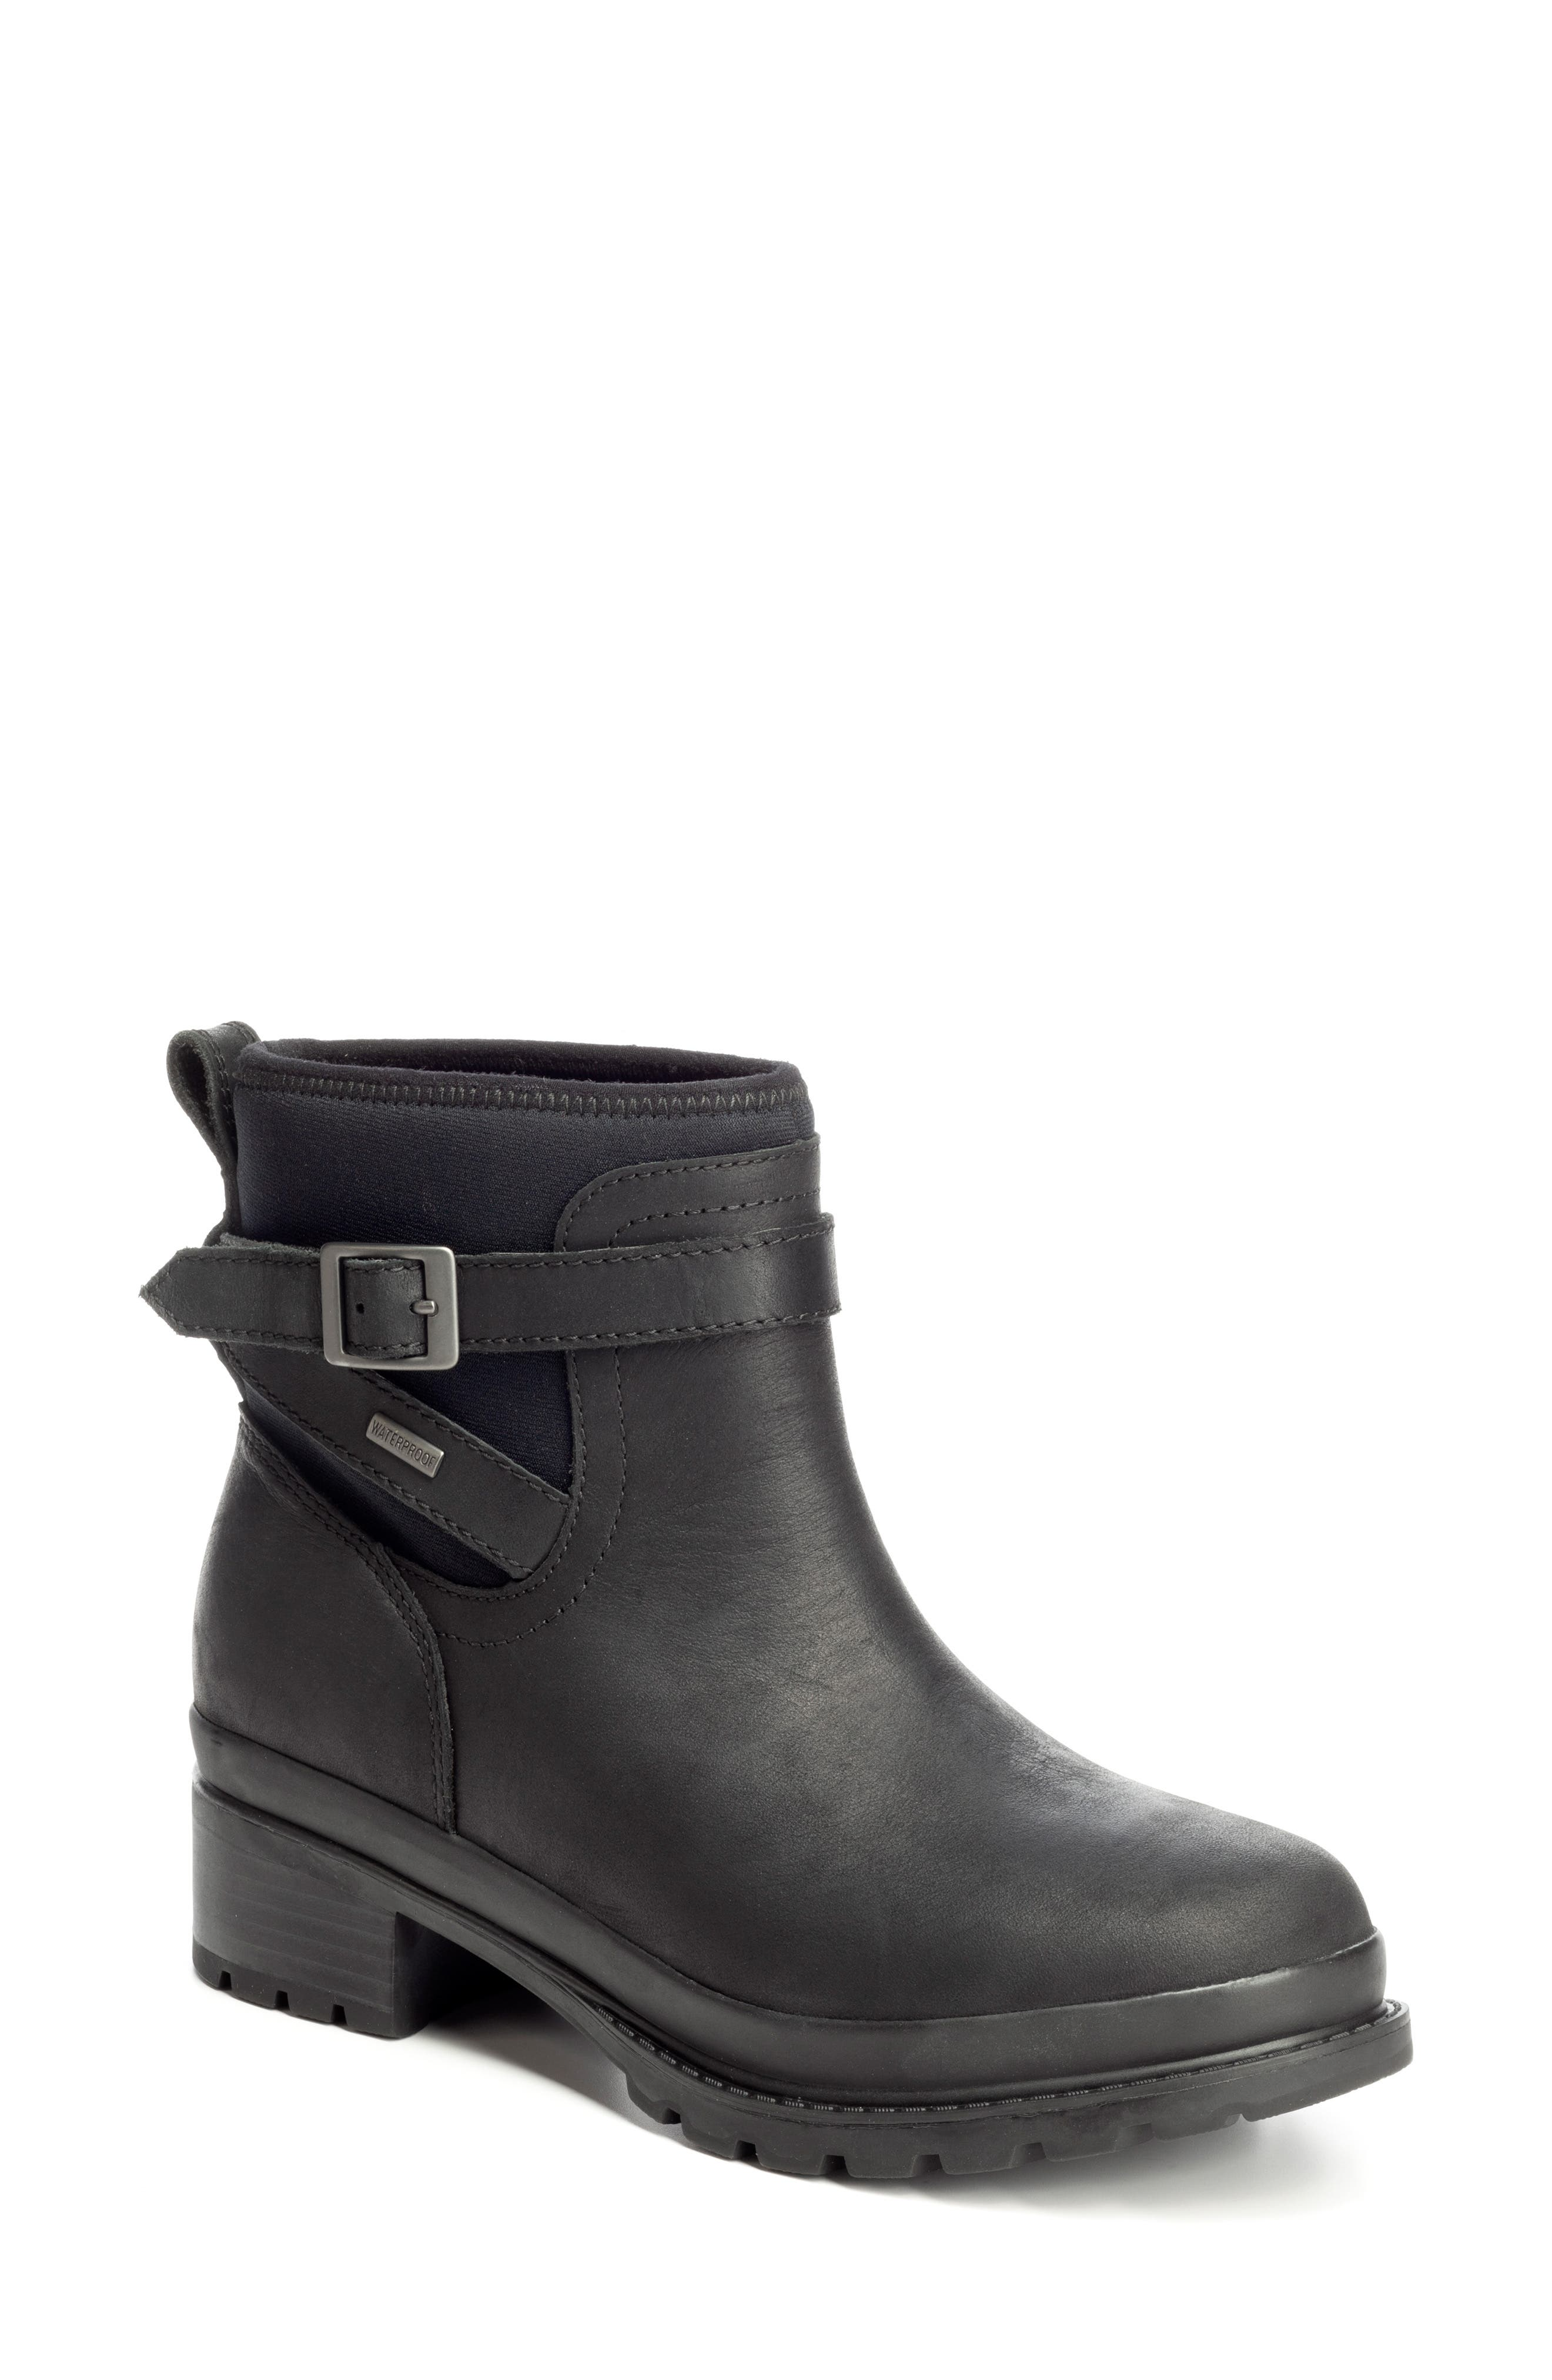 THE ORIGINAL MUCK BOOT COMPANY Liberty Waterproof Boot, Main, color, BLACK LEATHER